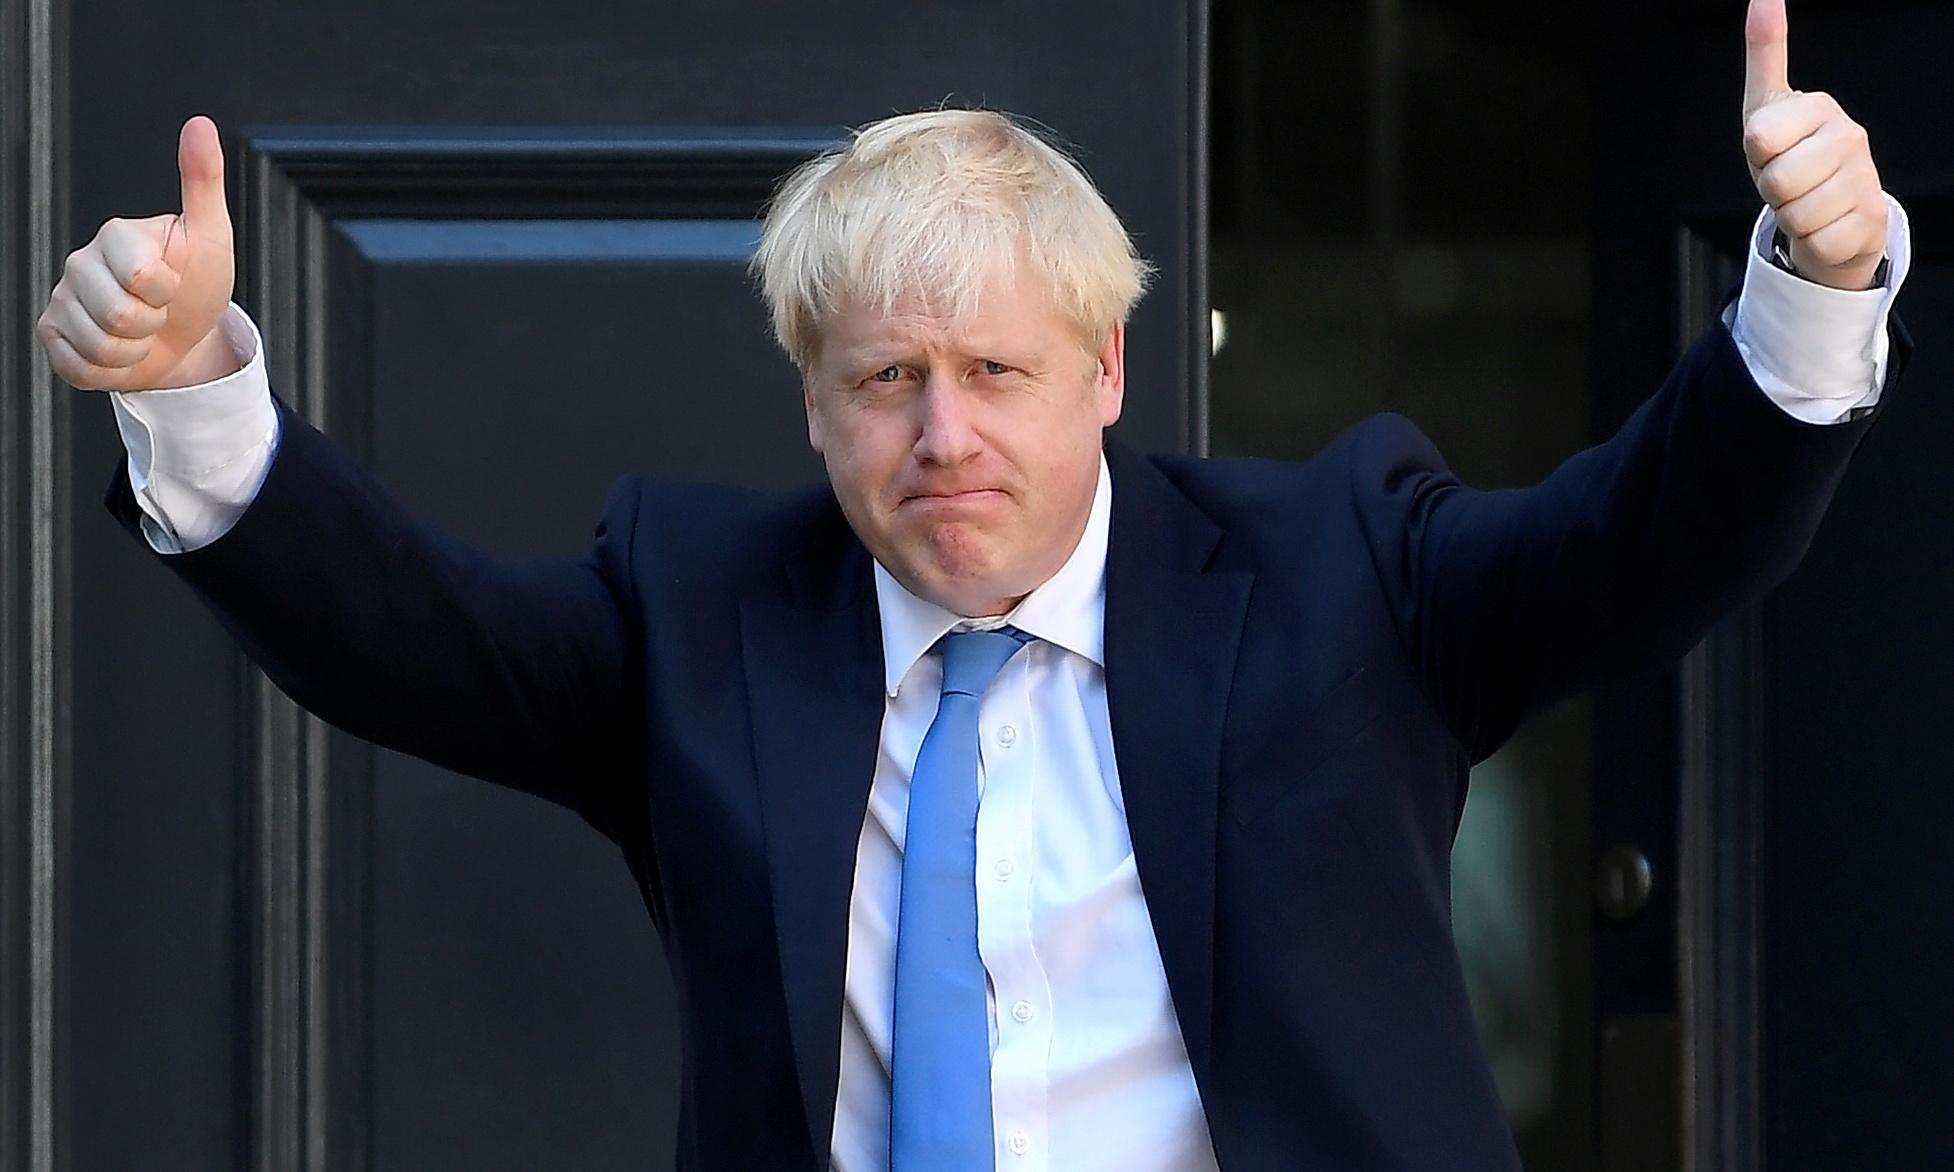 The Guardian view on Boris Johnson's leadership: the years of a clown